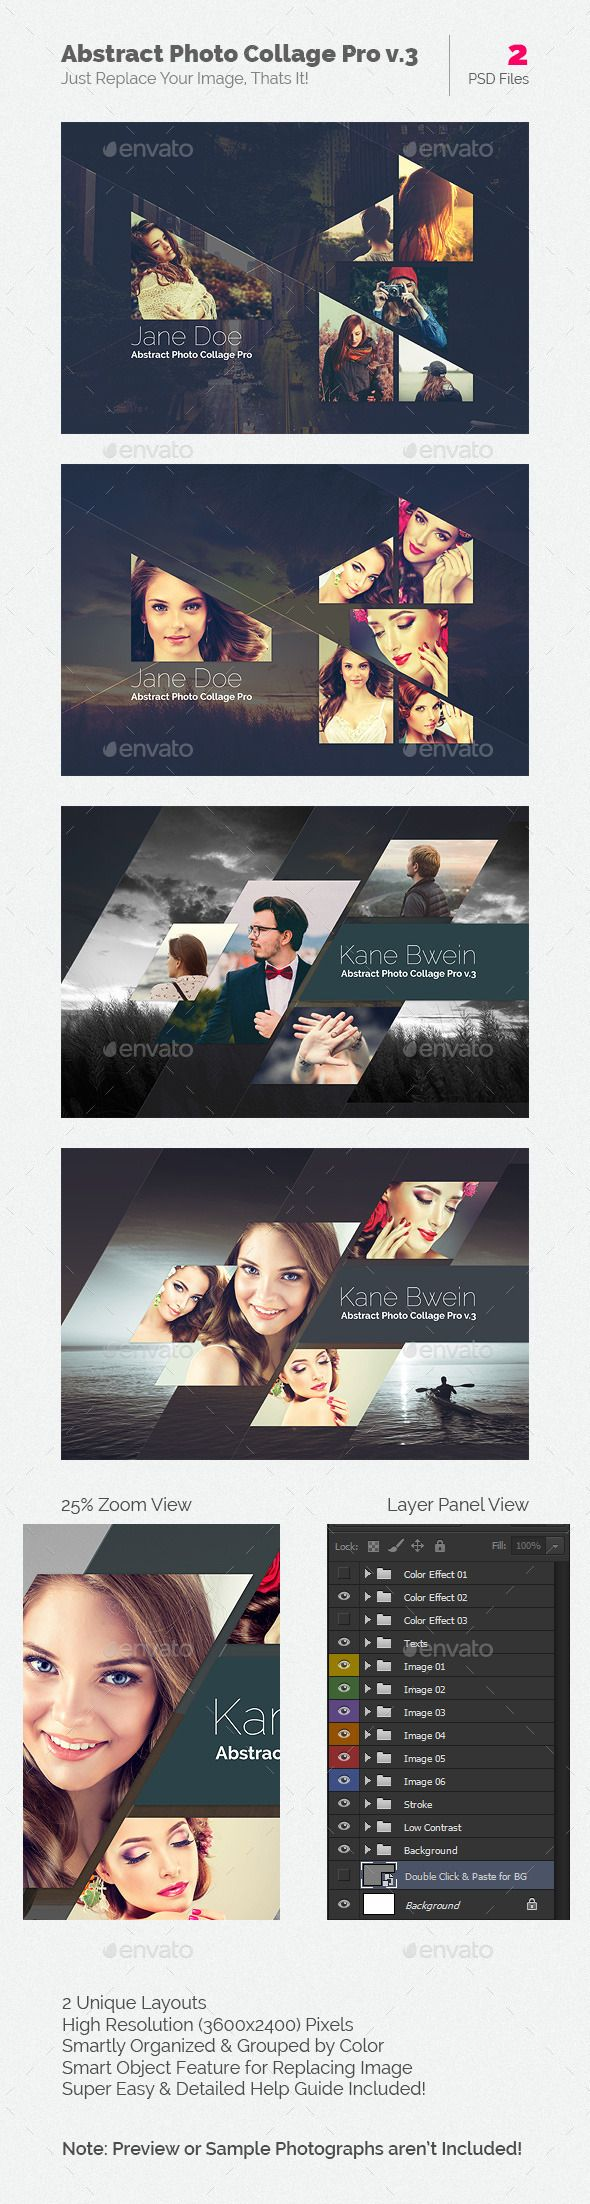 Abstract Photo Collage Pro Template #photography #psd Download: http://graphicriver.net/item/abstract-photo-collage-pro-v3/12945532?ref=ksioks